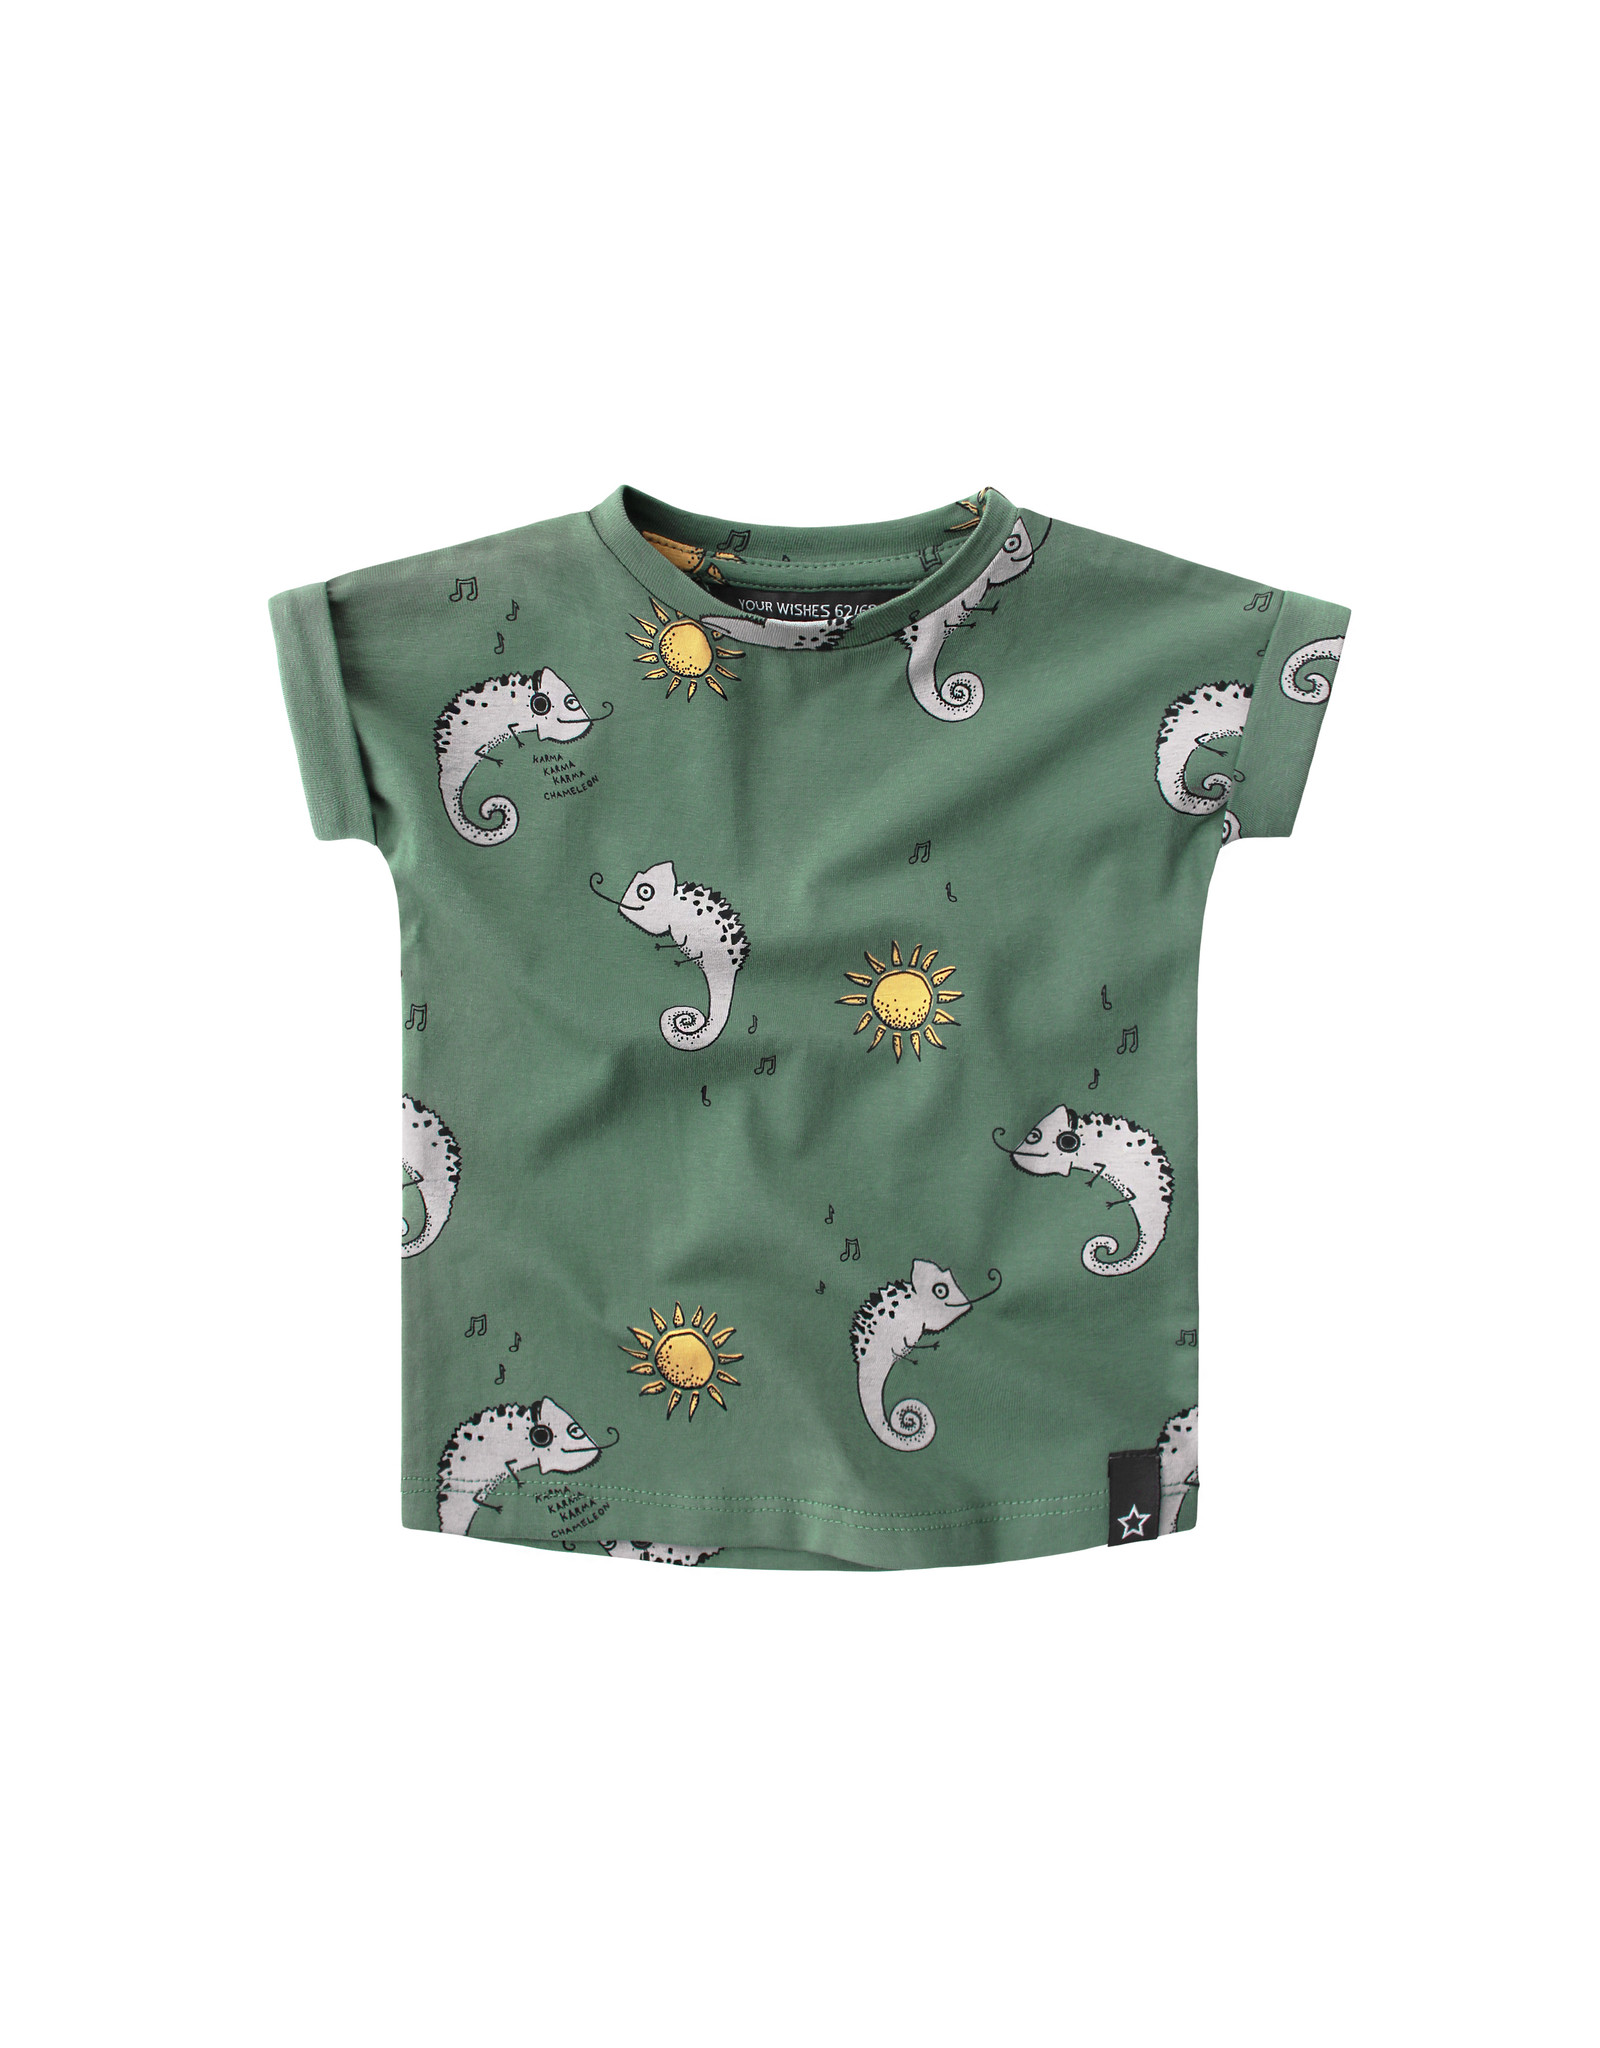 Your Wishes Chameleon | Boxy Tee